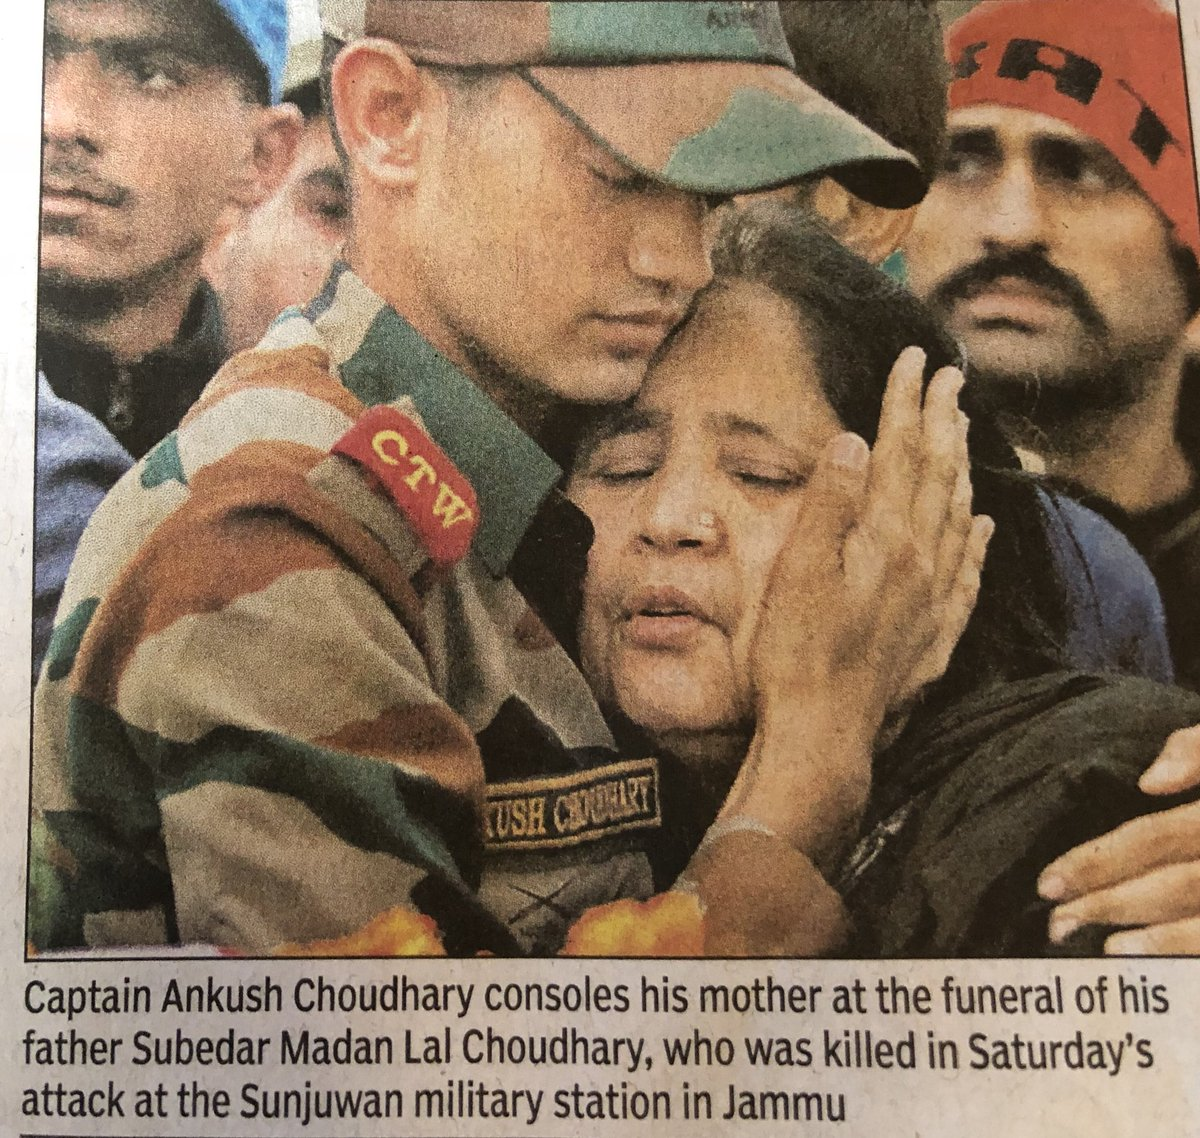 The kind of heart-wrenching photograph we've become all-too accustomed to seeing in the news.But let us pause,even if just for a moment,to acknowledge this mother & son.The son's expression bears witness to the commitment two generations of his family have made to the country